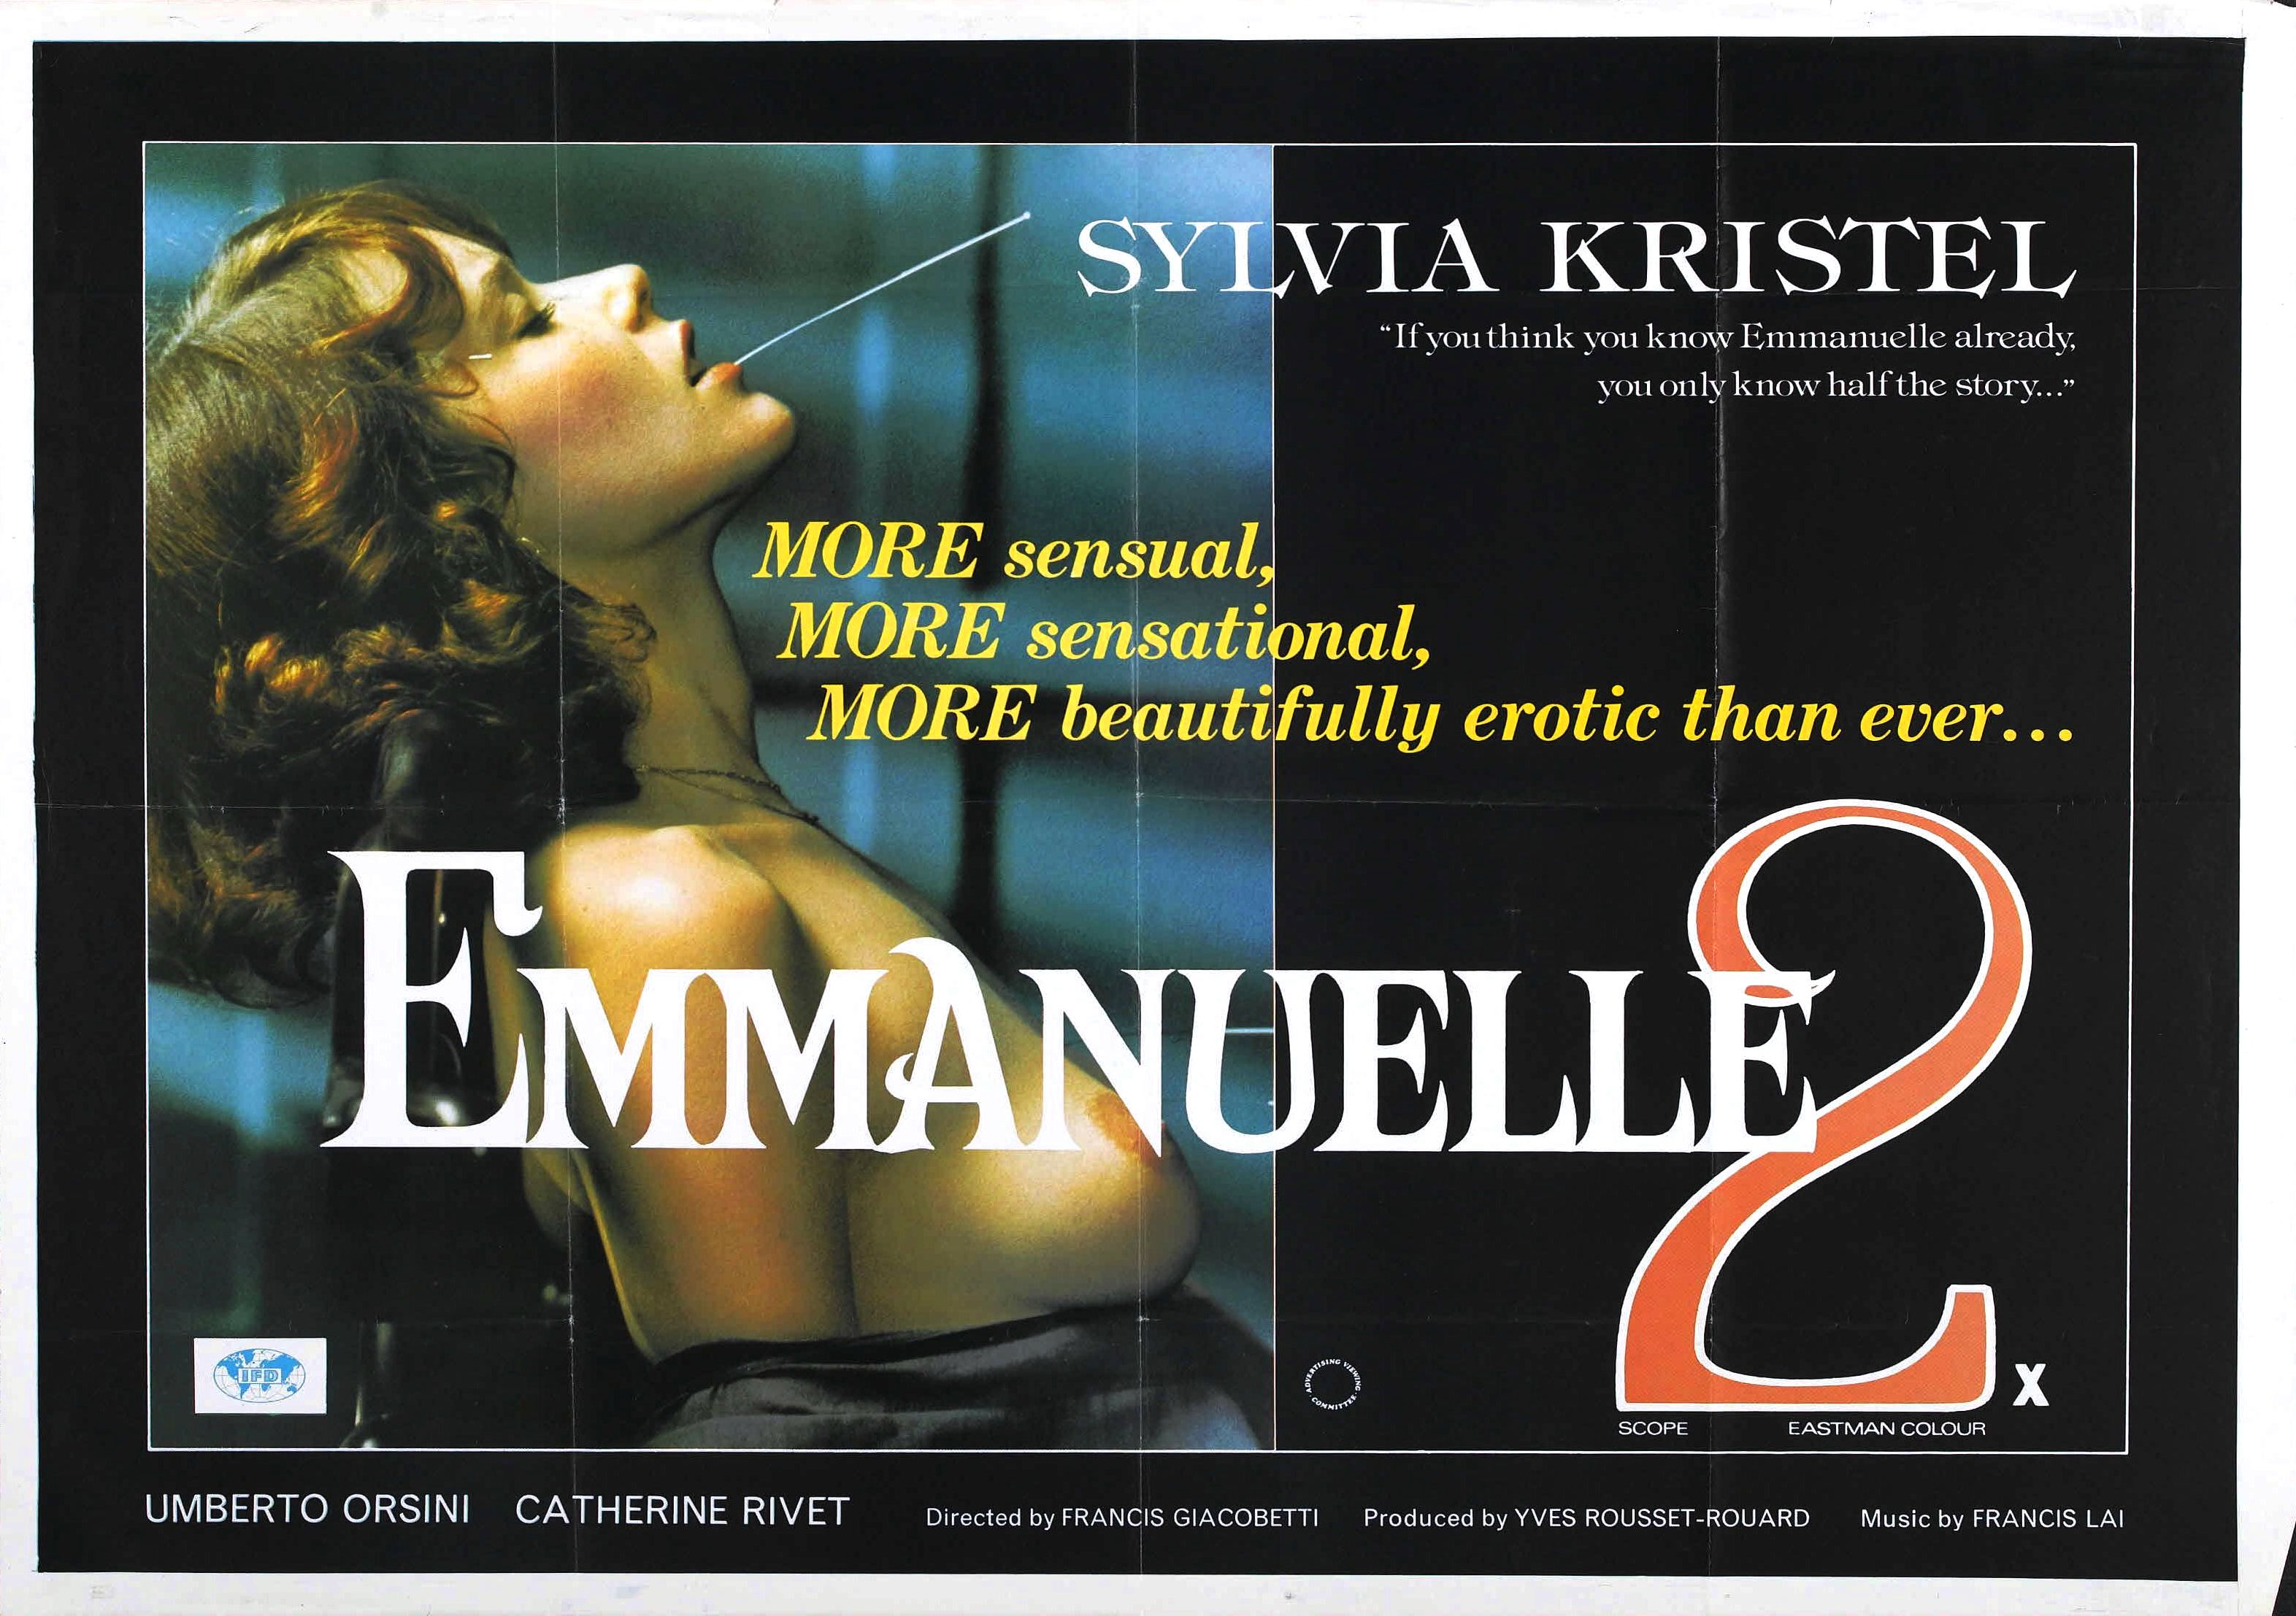 Erotic film posters: sexploitation and adult poster art